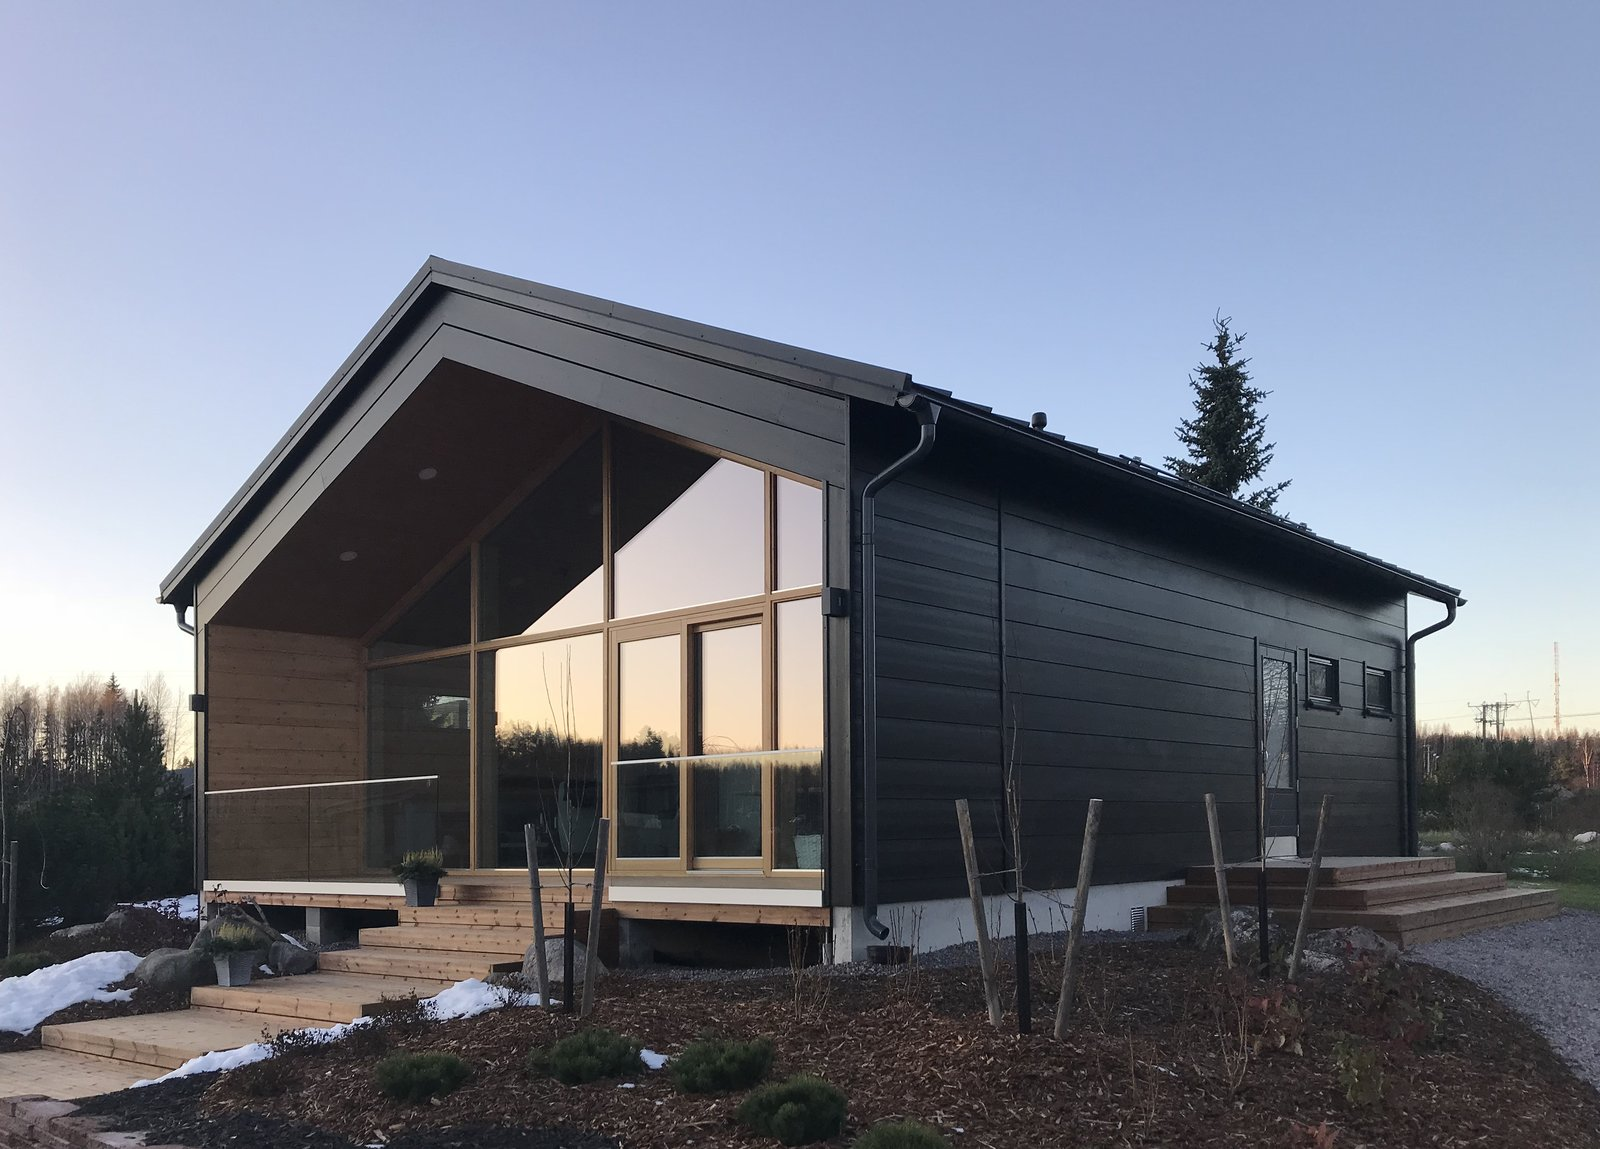 Vista cabin exterior with black painted wood and glass exterior.